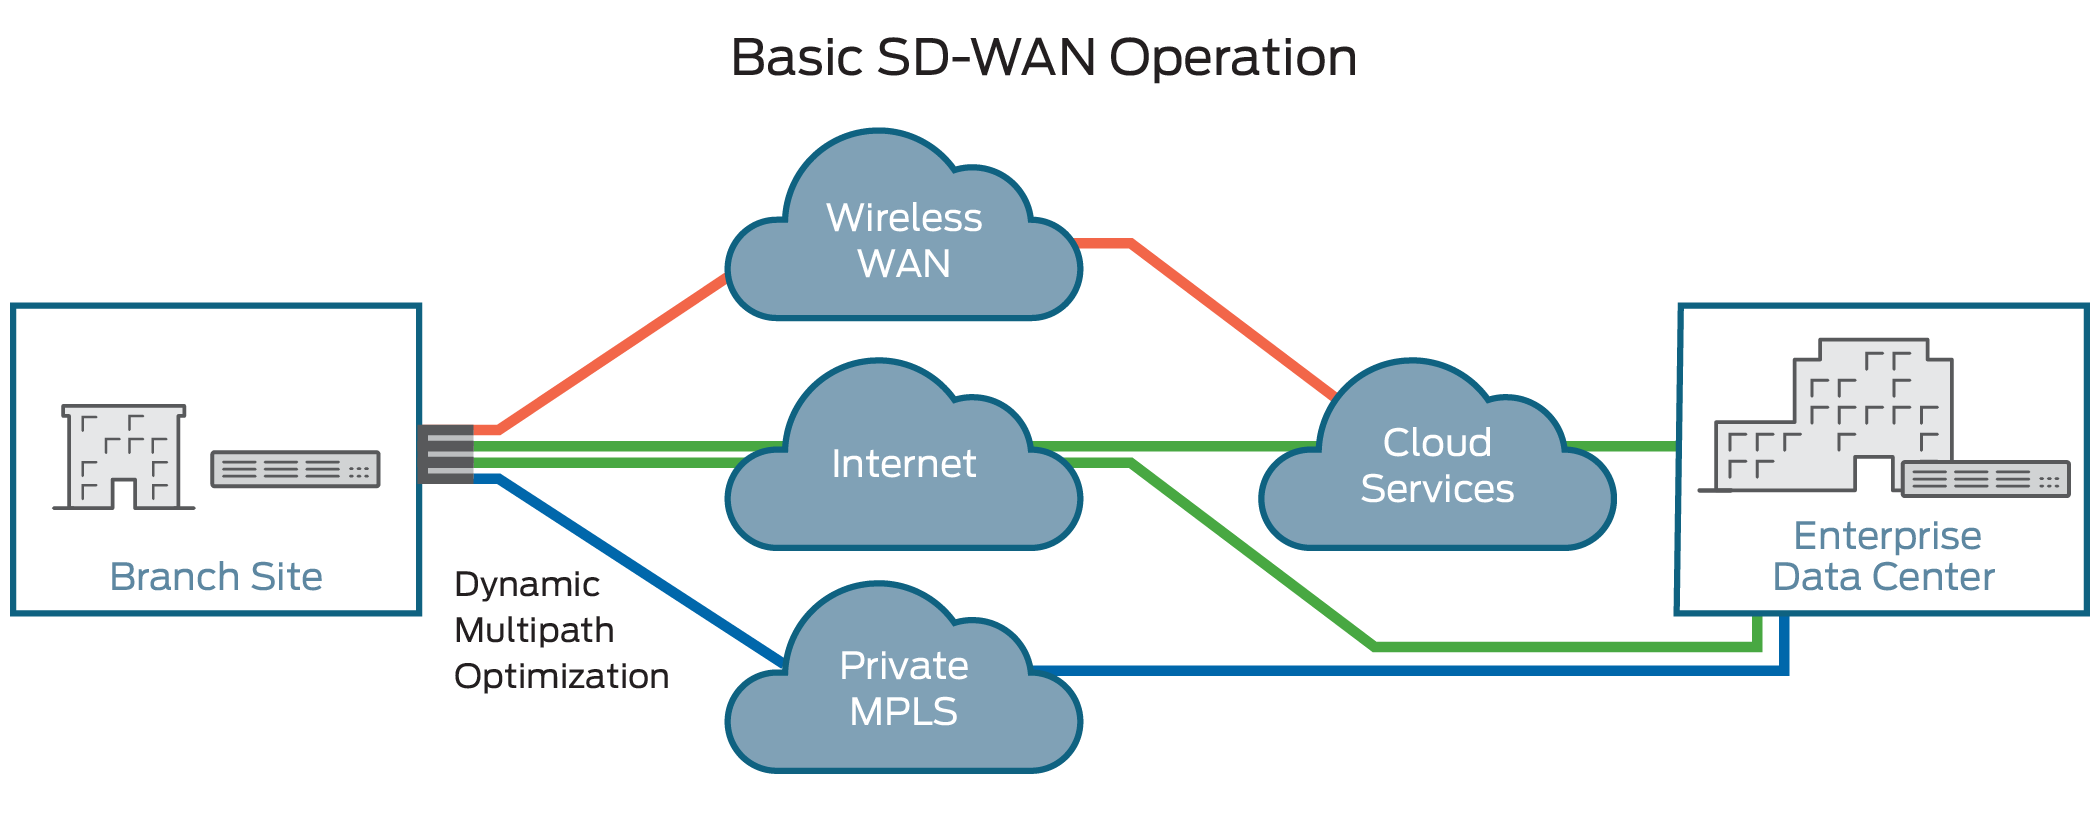 Top 10 SD-WAN Vendors in 2020?